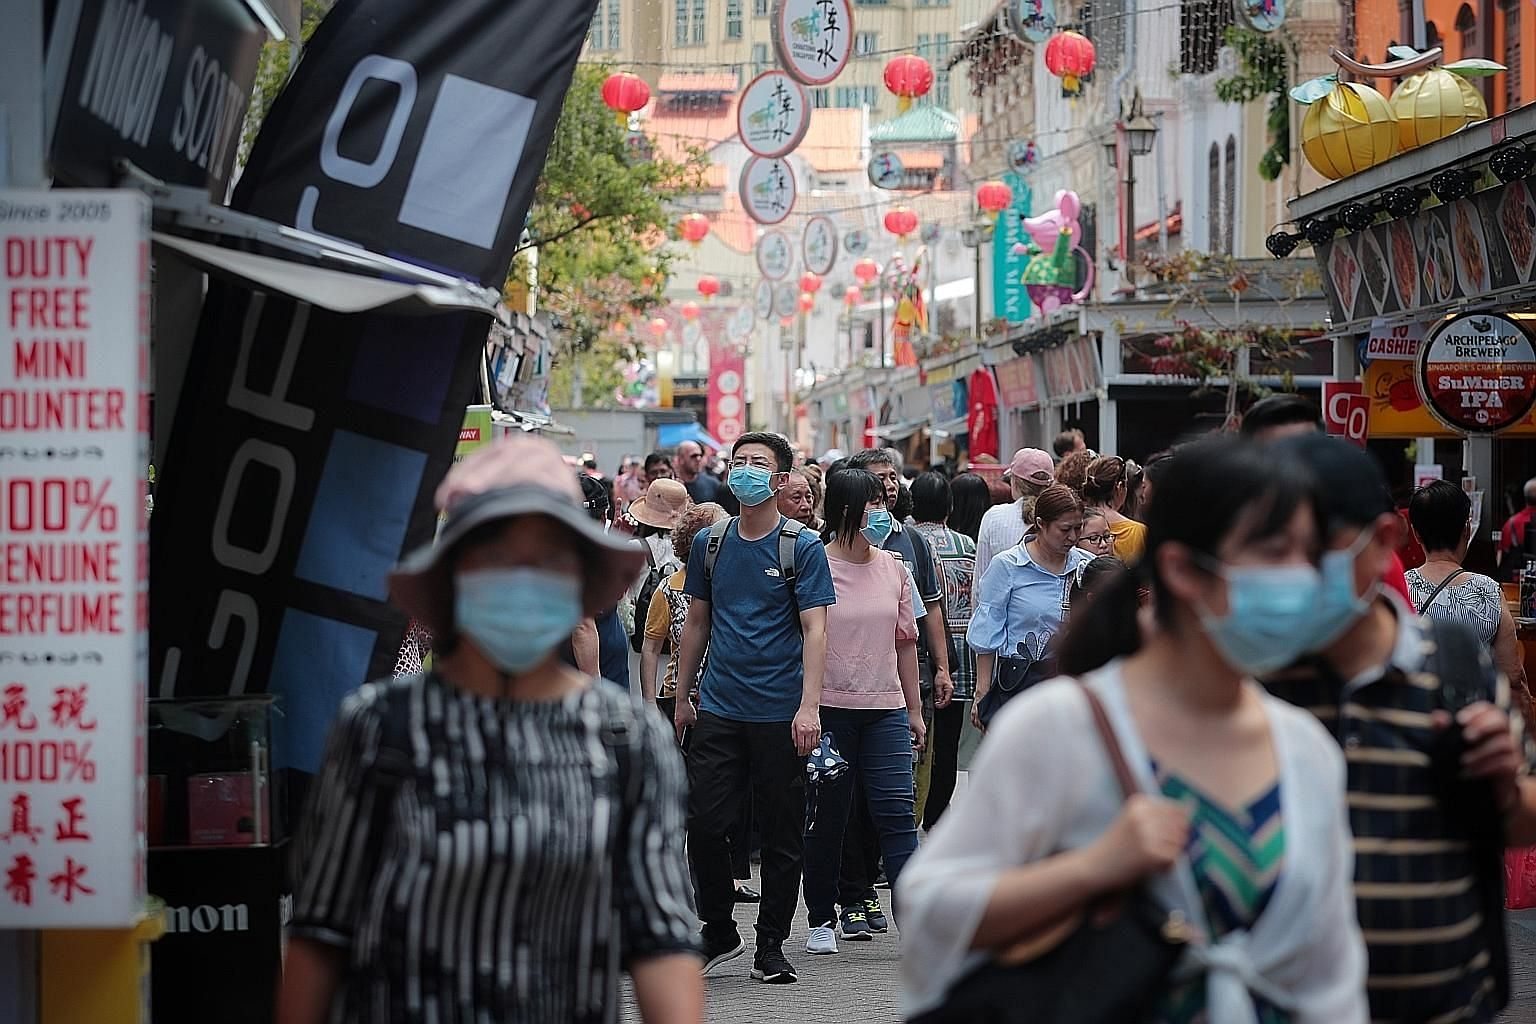 Mask-clad shoppers at Chinatown (above) on the eve of Chinese New Year, and visitors arriving at VivoCity (right) from Sentosa island via the Sentosa Express yesterday. Event organisers are taking precautionary measures, with health advisory posters